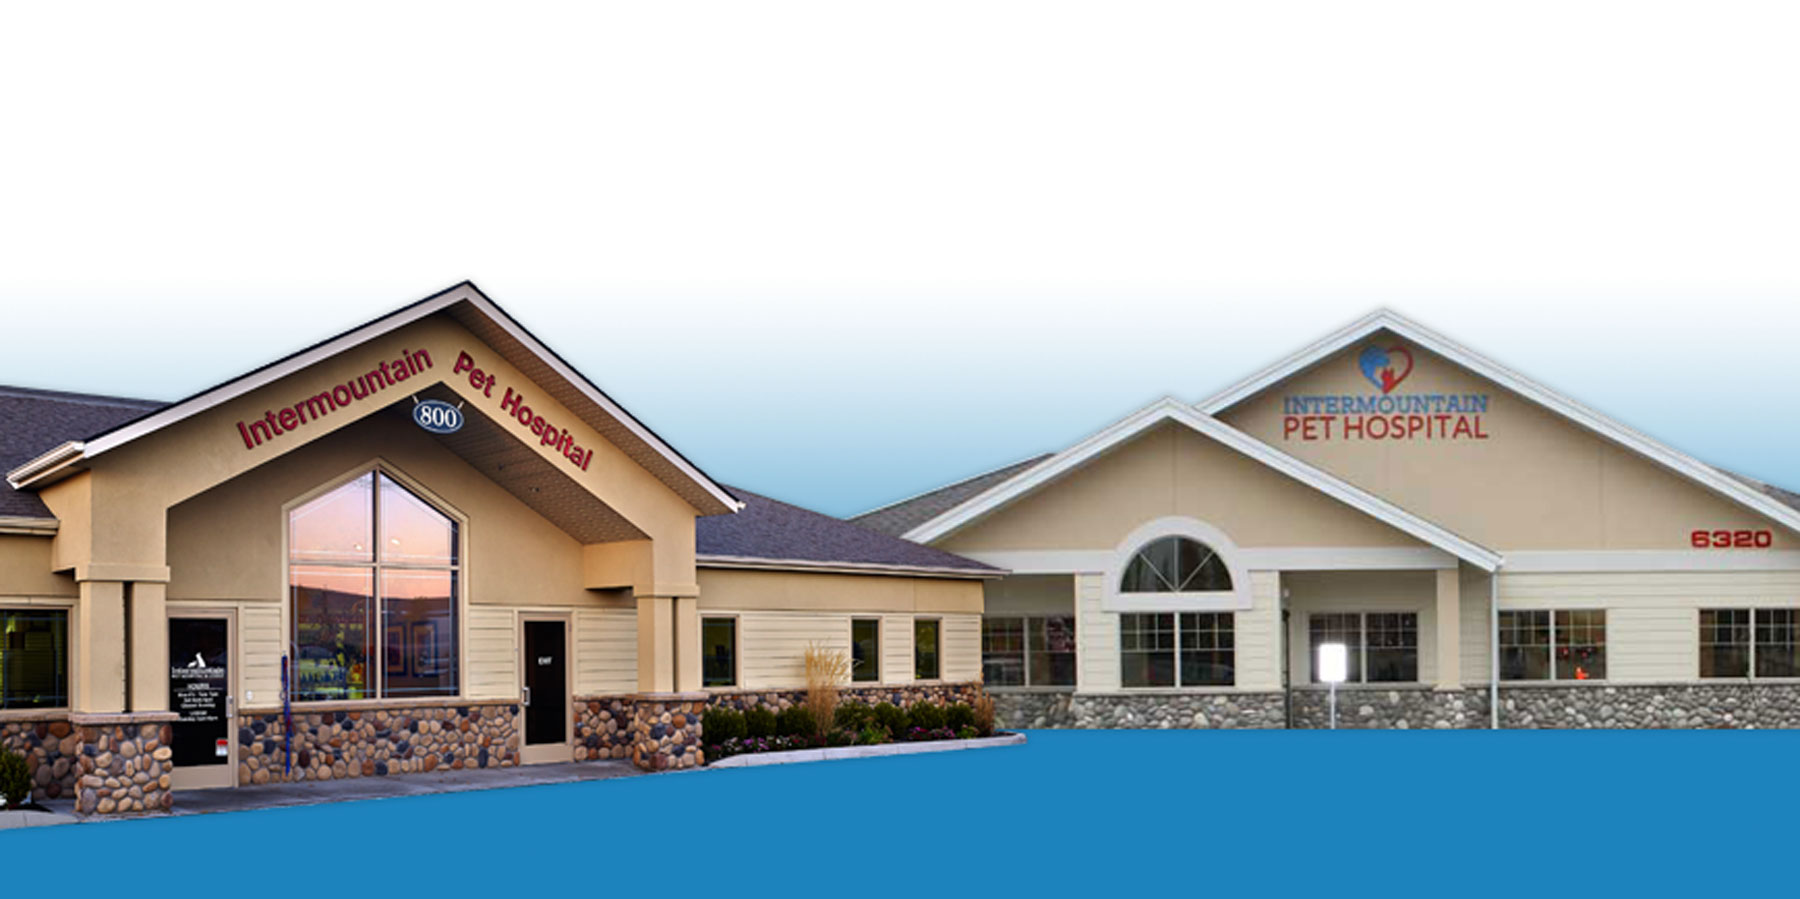 Now 2 Intermountain Pet Hospital Locations